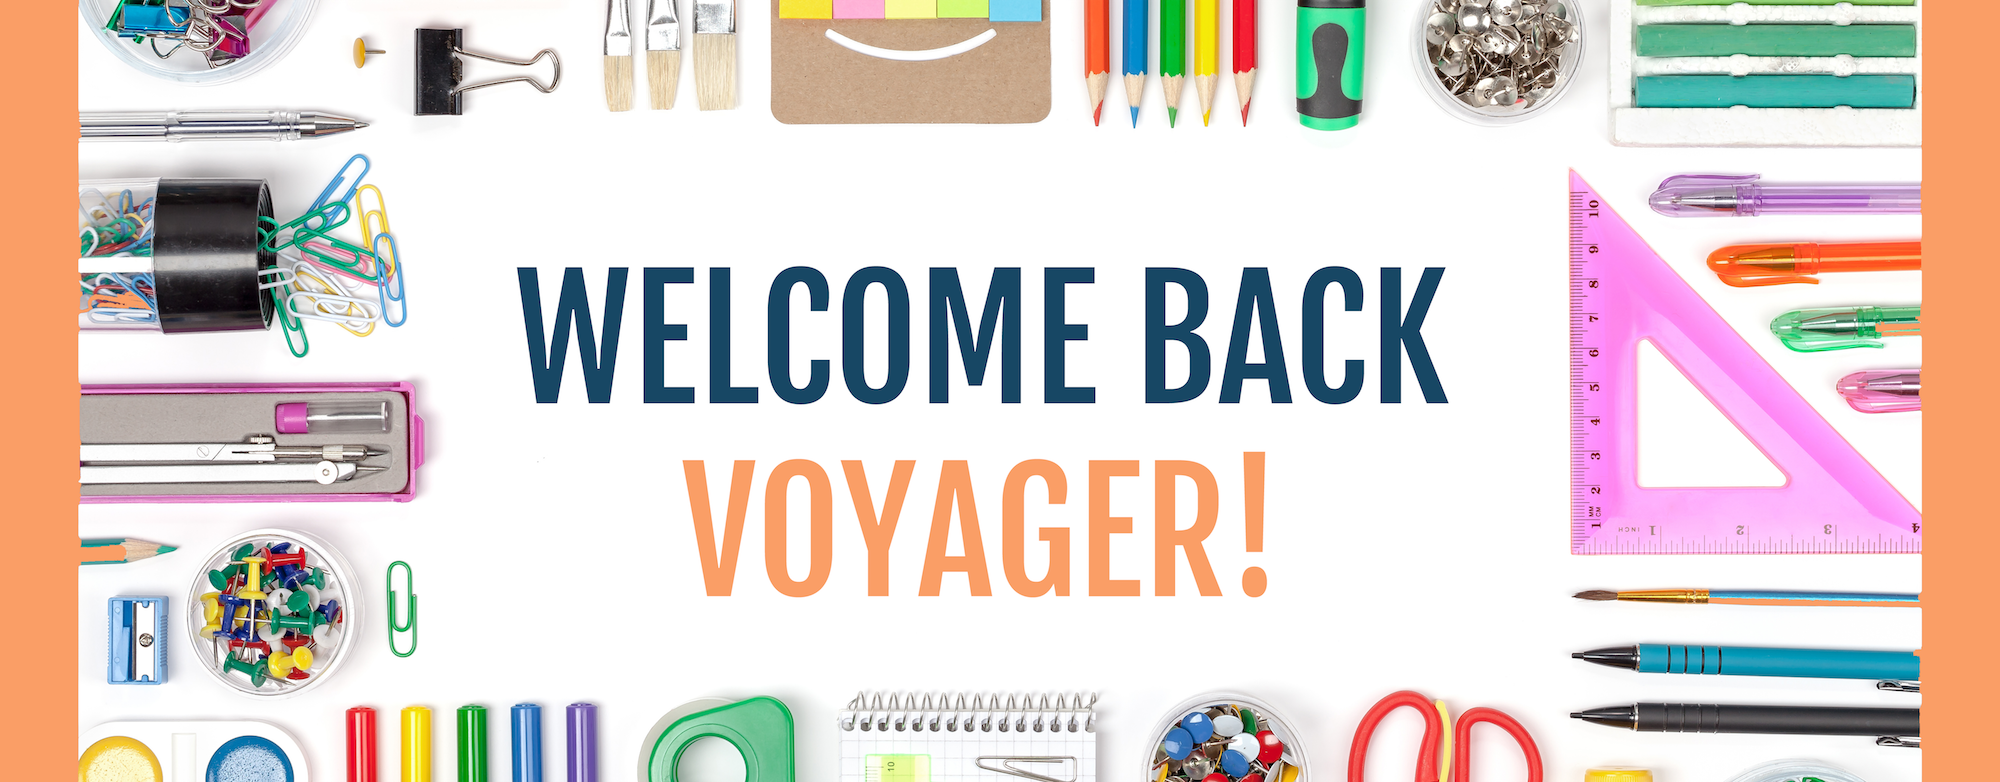 Welcome Back Voyager